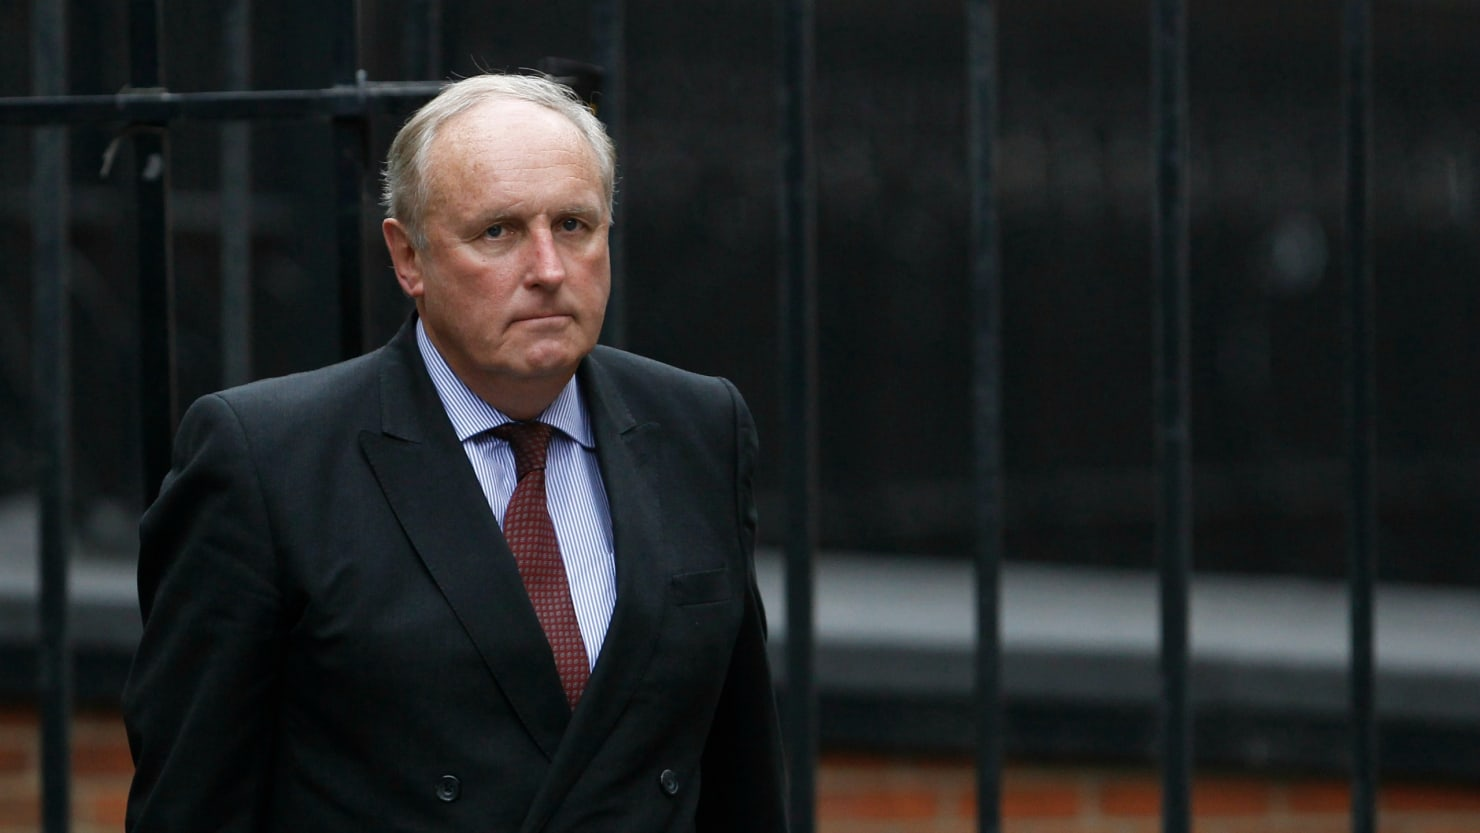 Paul Dacre, the Controversial British Newspaper Editor Blamed For Brexit, Announces Retirement